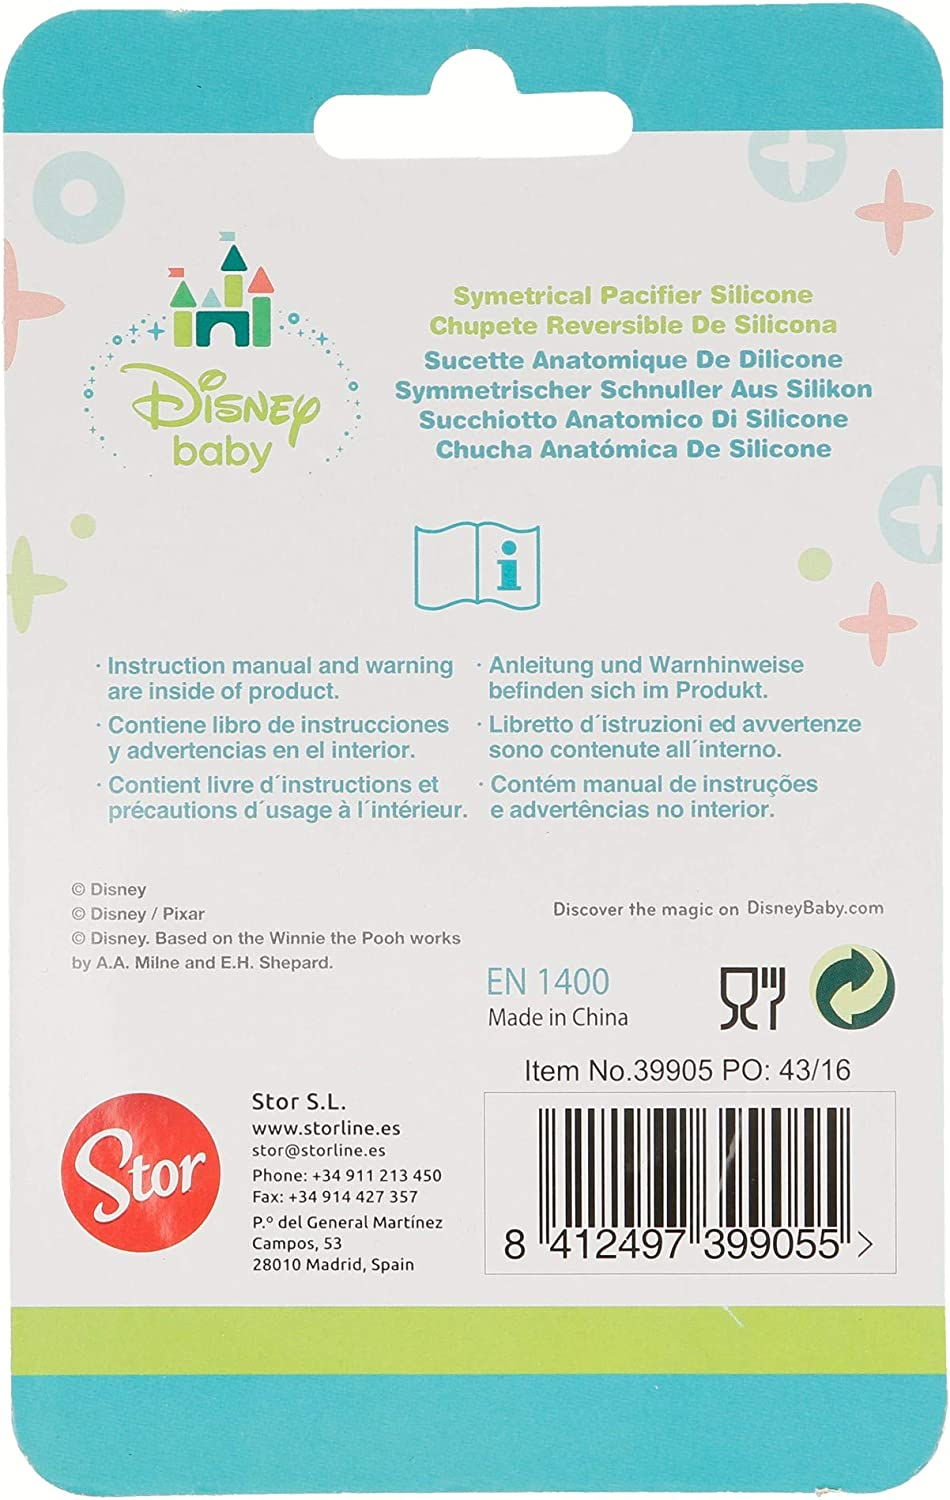 Stor ST-39905 Chupete reversible silicona 6 m tetina fisiol/ógica en blister dise/ño Minnie Mouse